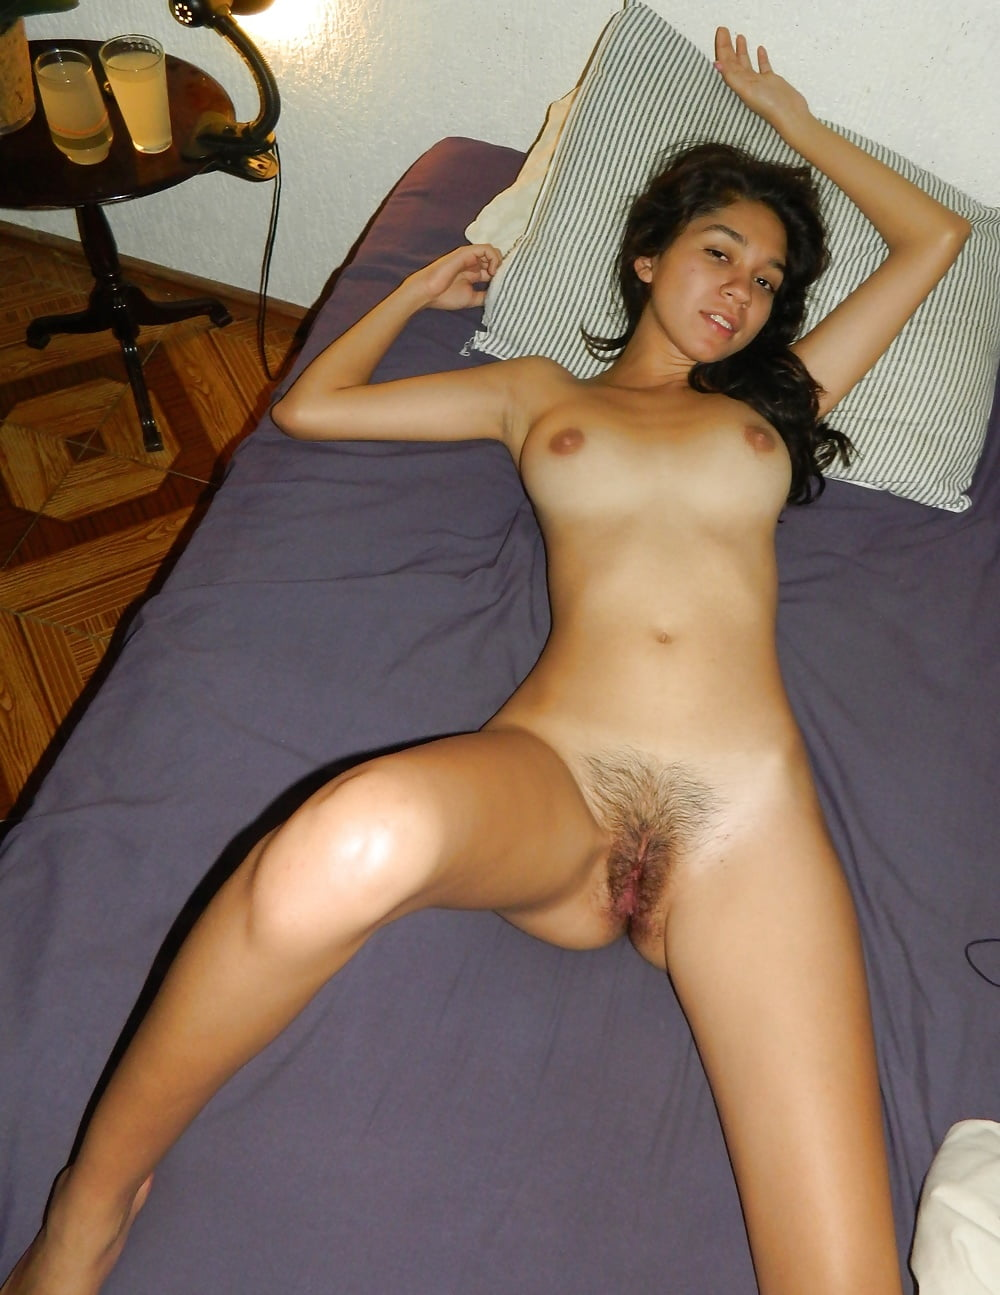 Nude spanish amateurs — photo 5